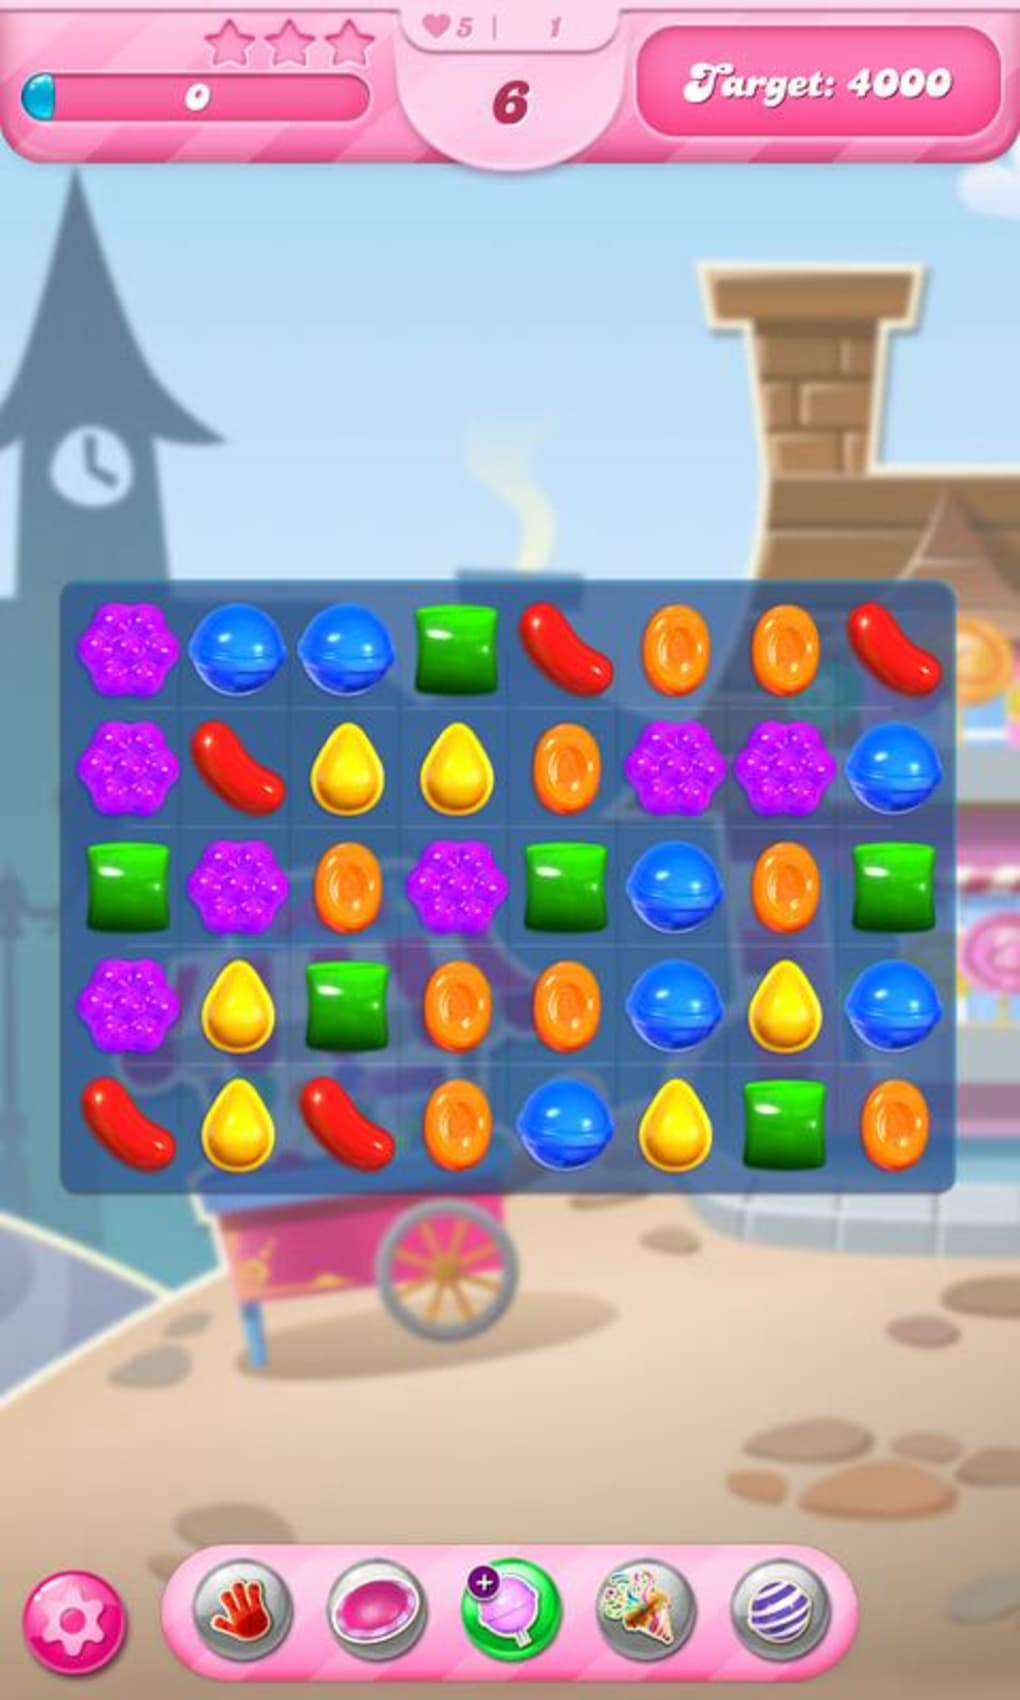 descargar candy crush saga gratis para pc windows 8.1